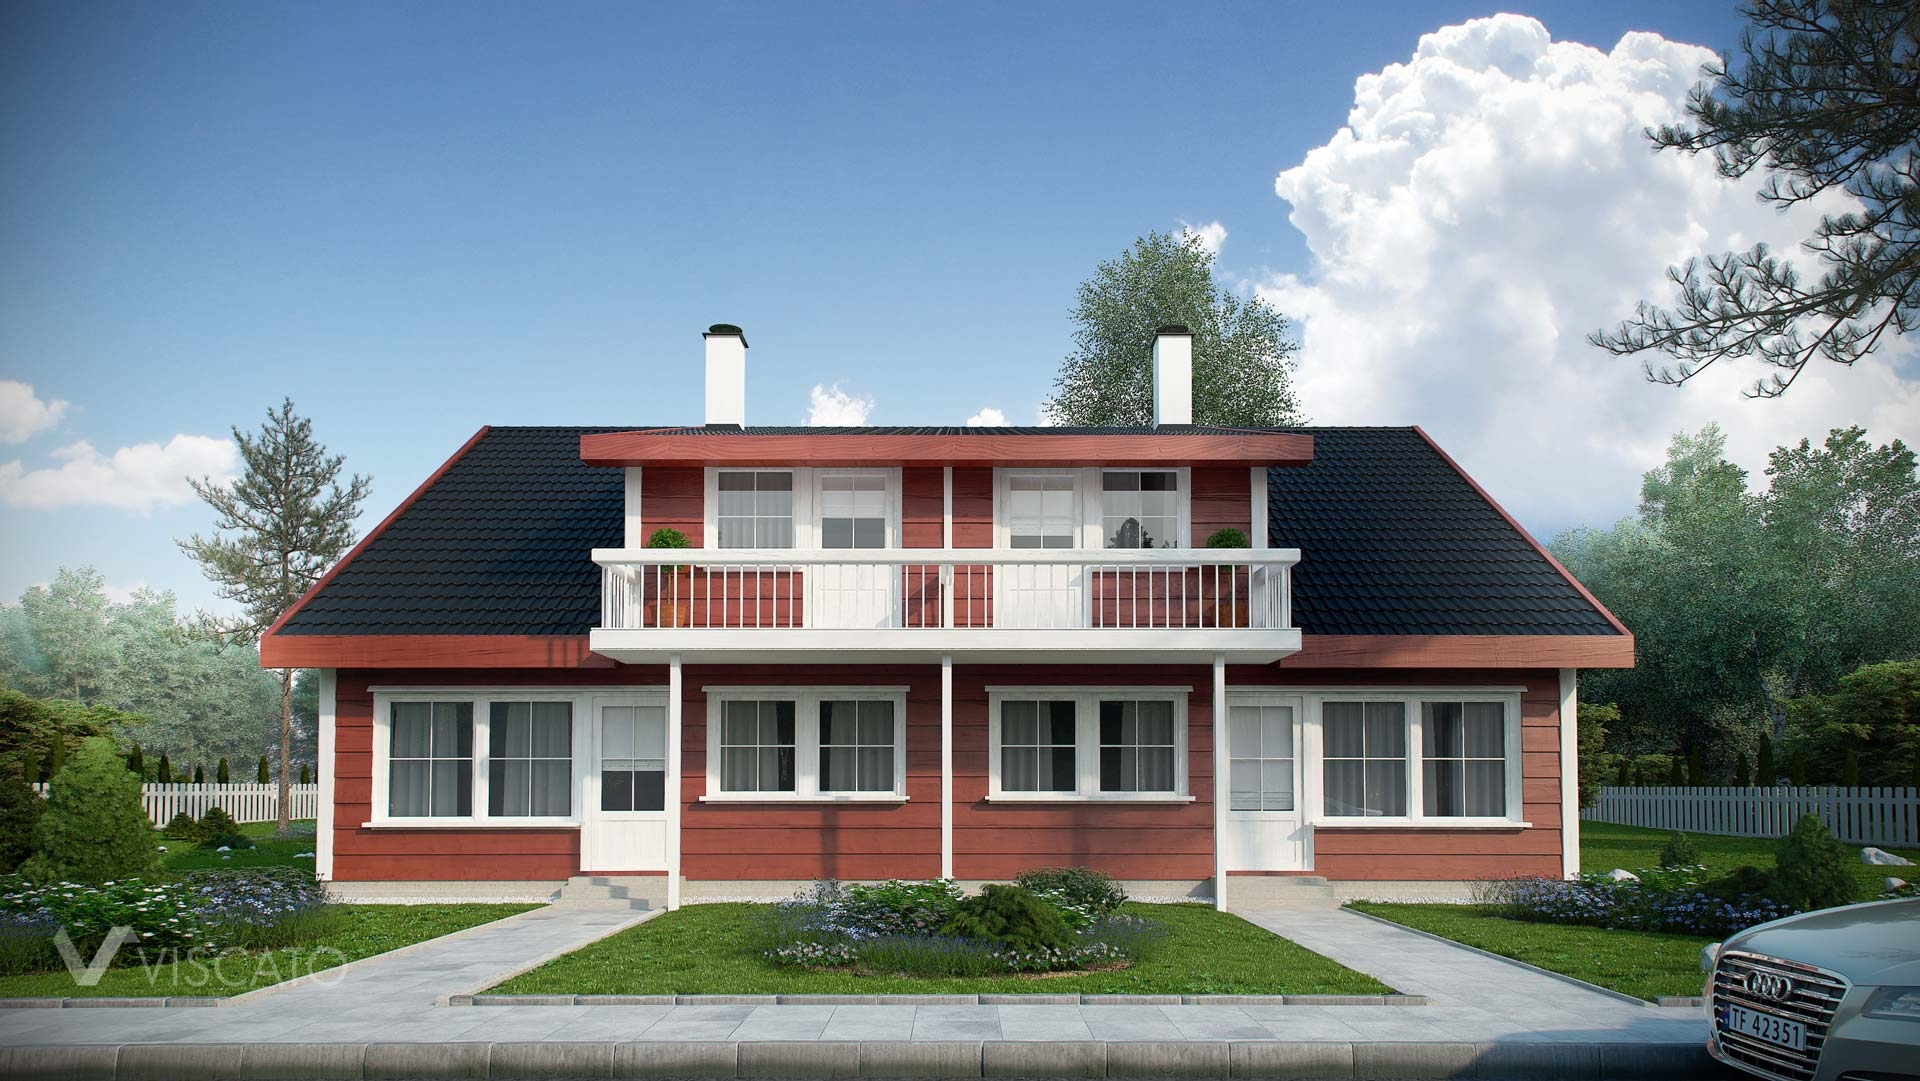 Tomannsbustad- exterior rendering of typical norwegian house